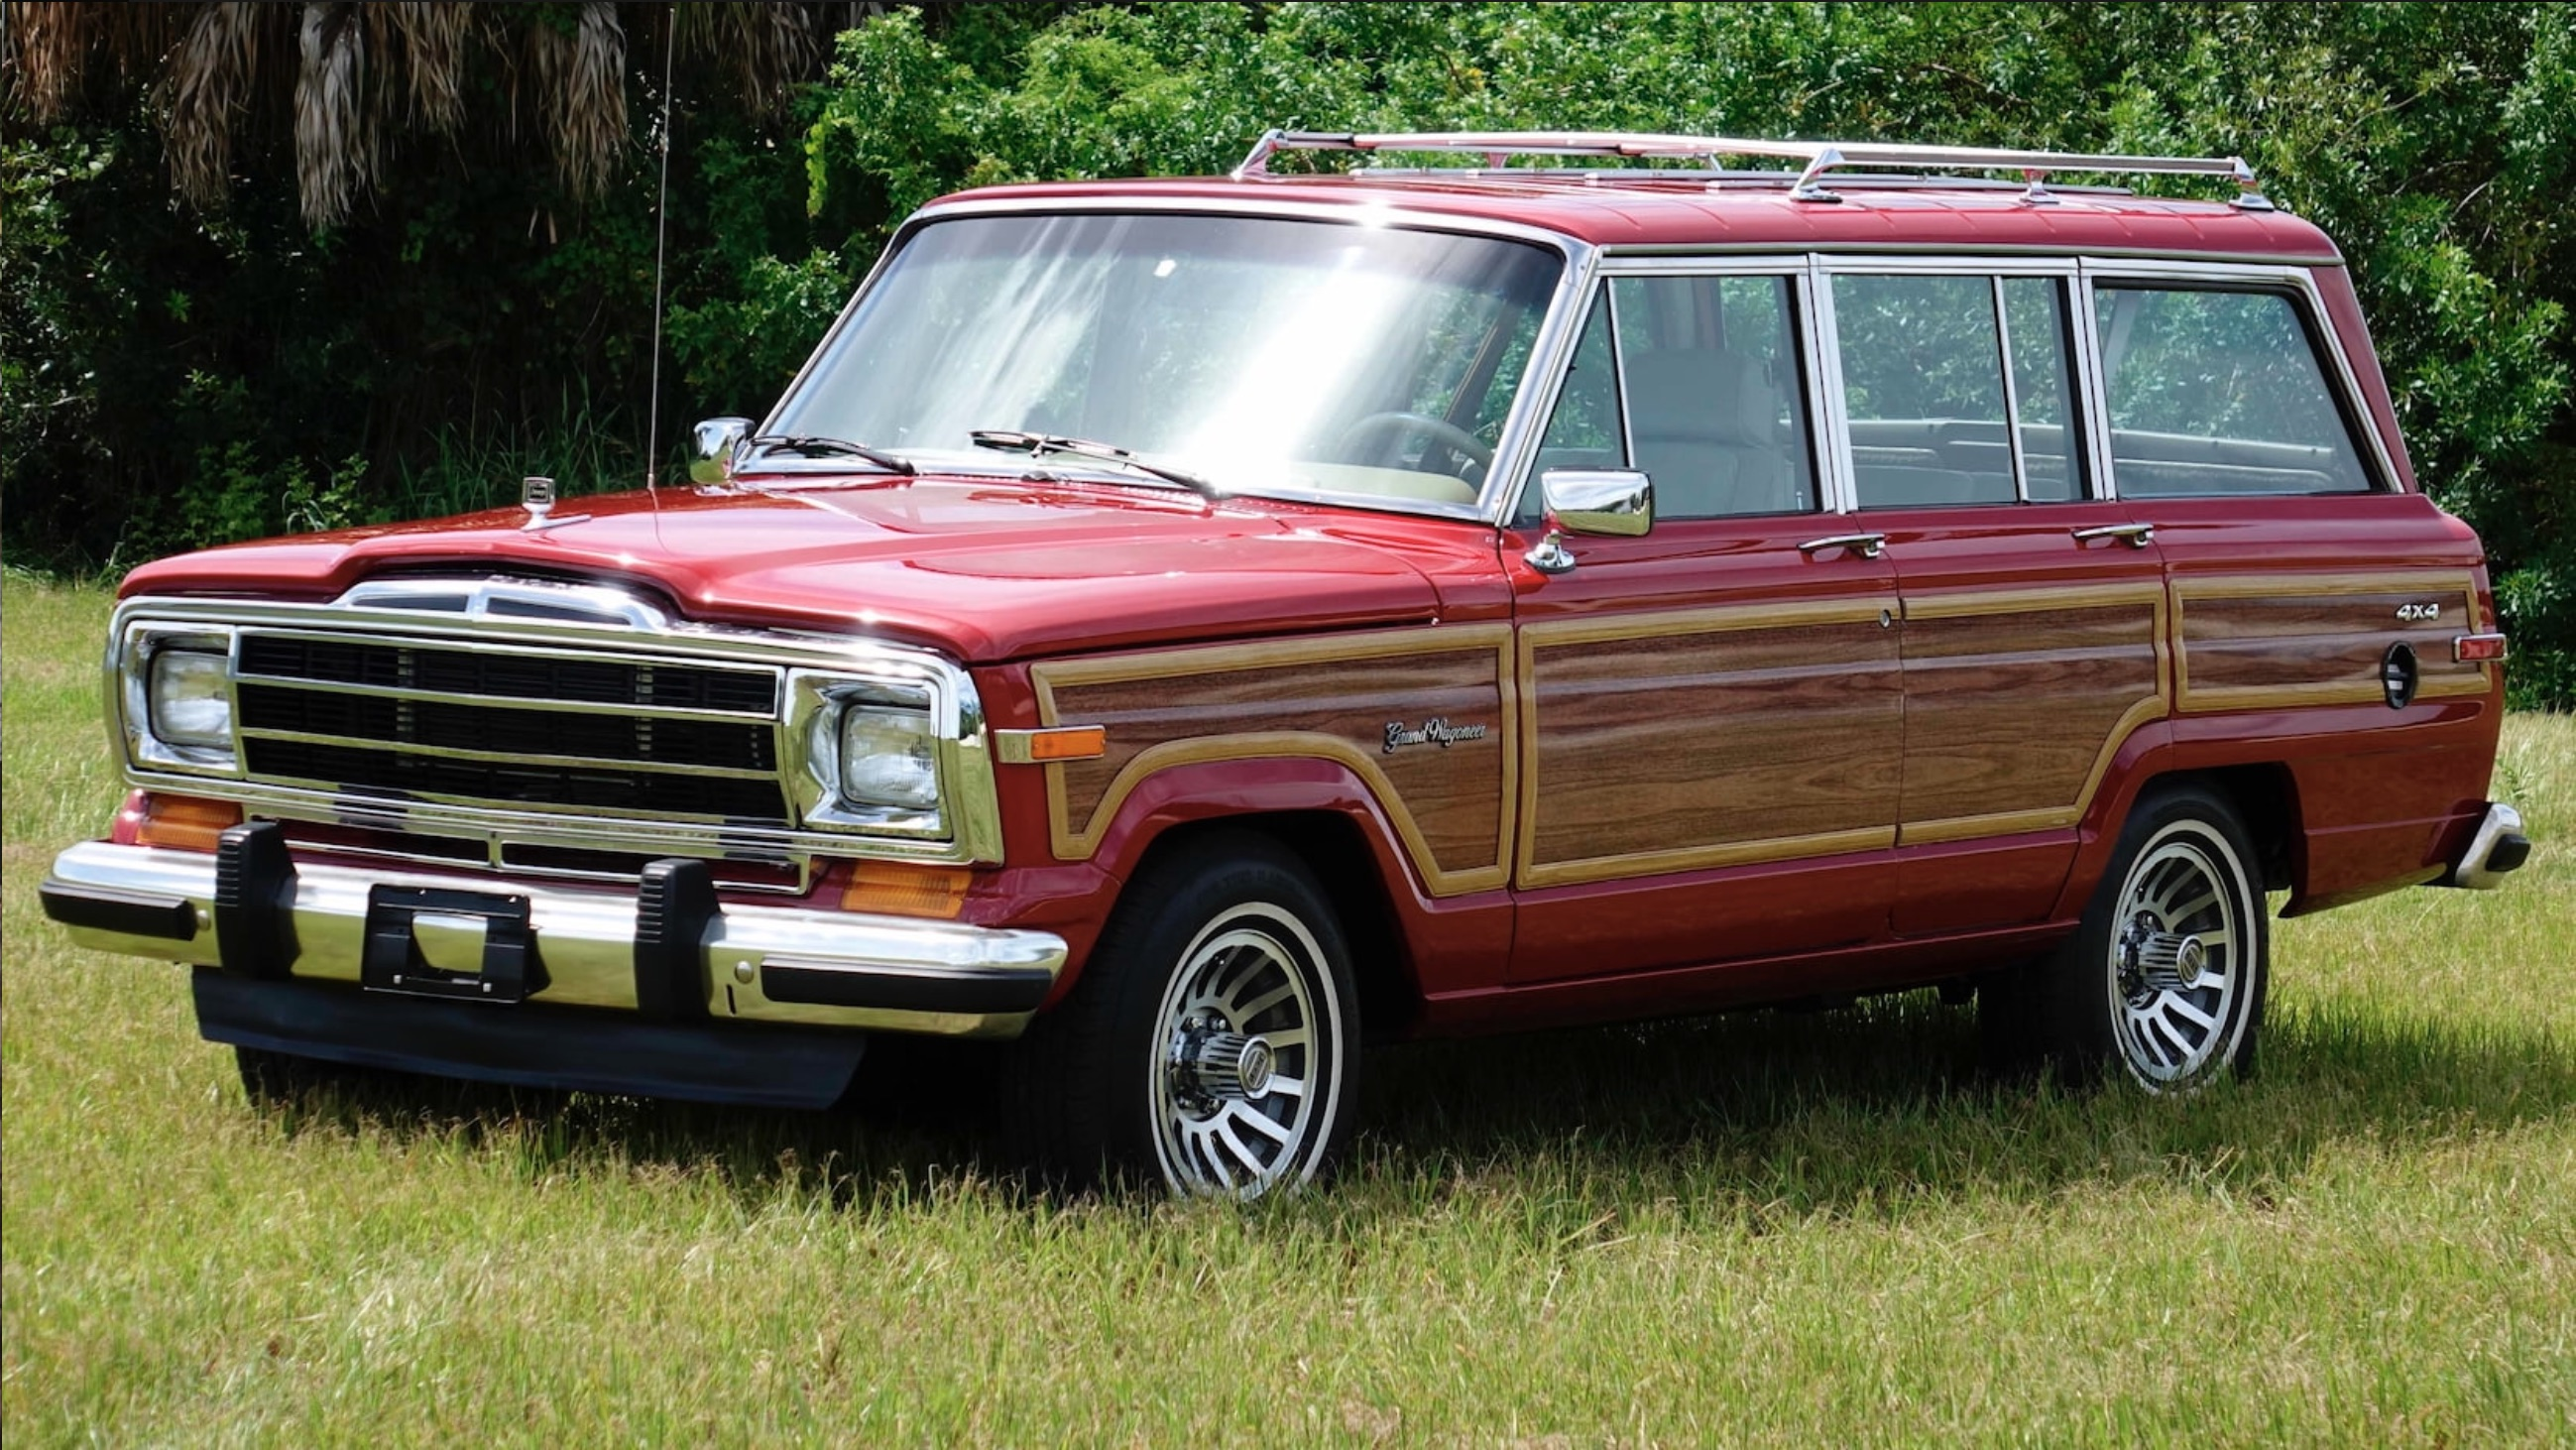 Money No Object: HELLWAGON! This 1989 Jeep Grand Wagoneer Is Packing Ma Mopar's Torque Monster!